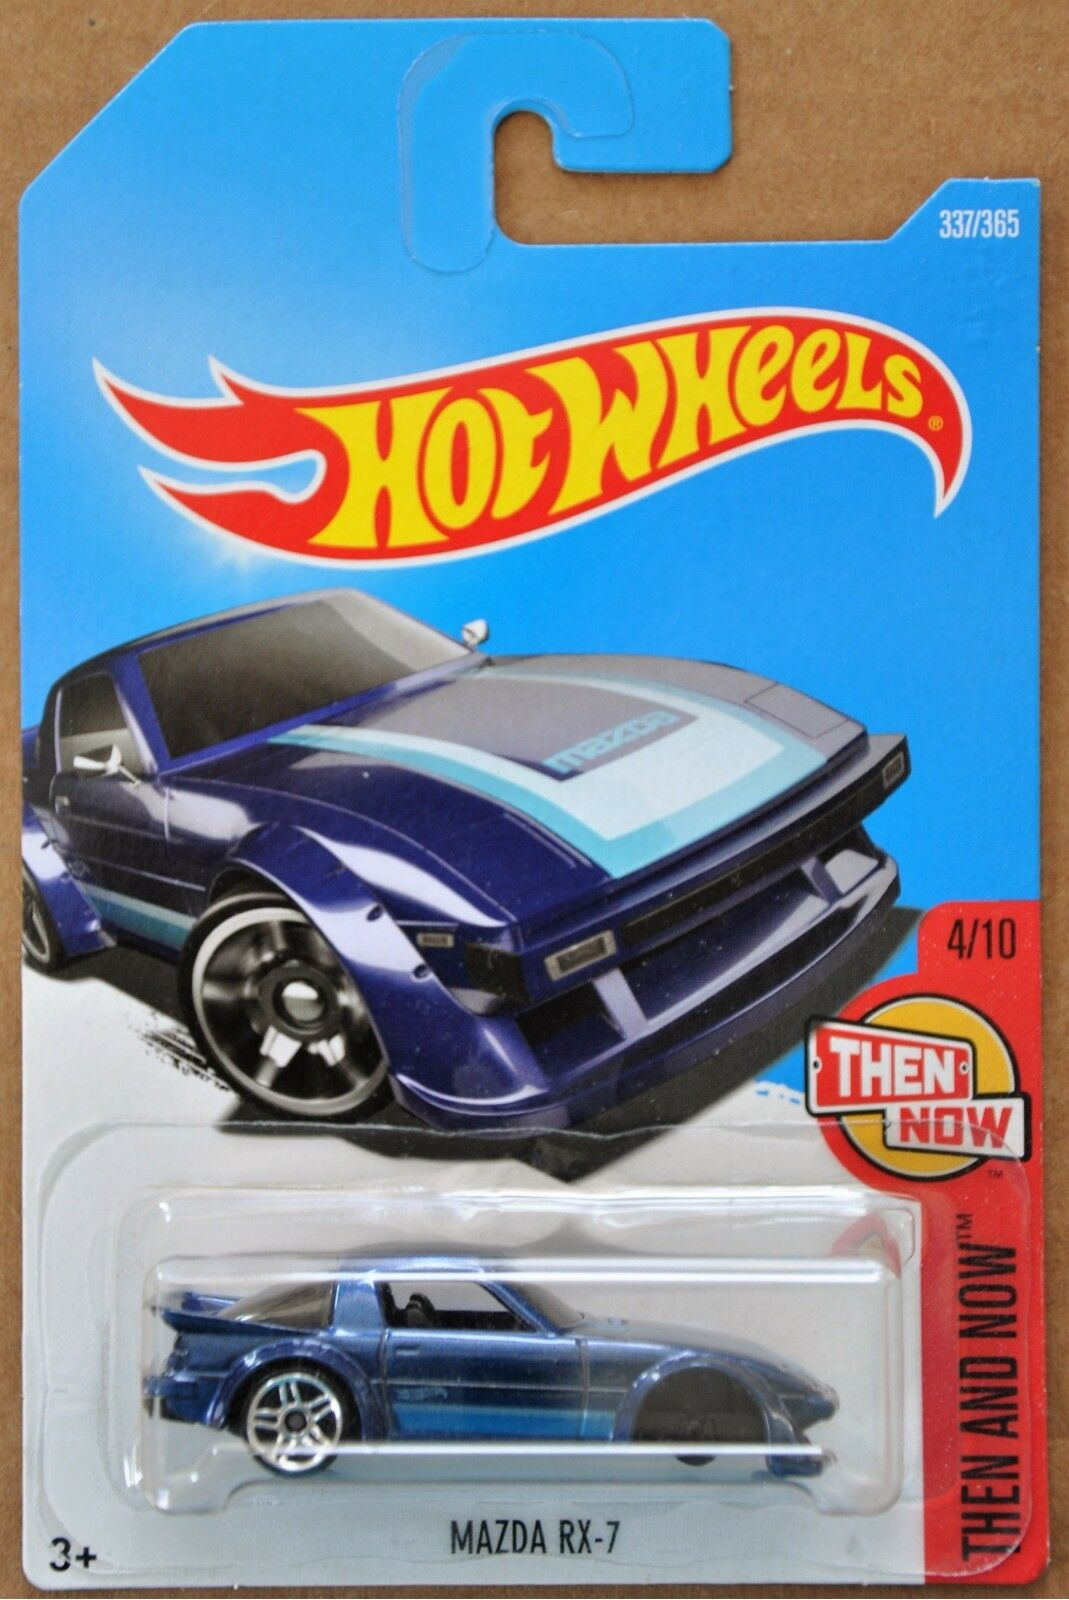 2017 Hot Wheels Mazda RX-7 337 365 Then and Now 4 10 ERROR MISSING WHEELS